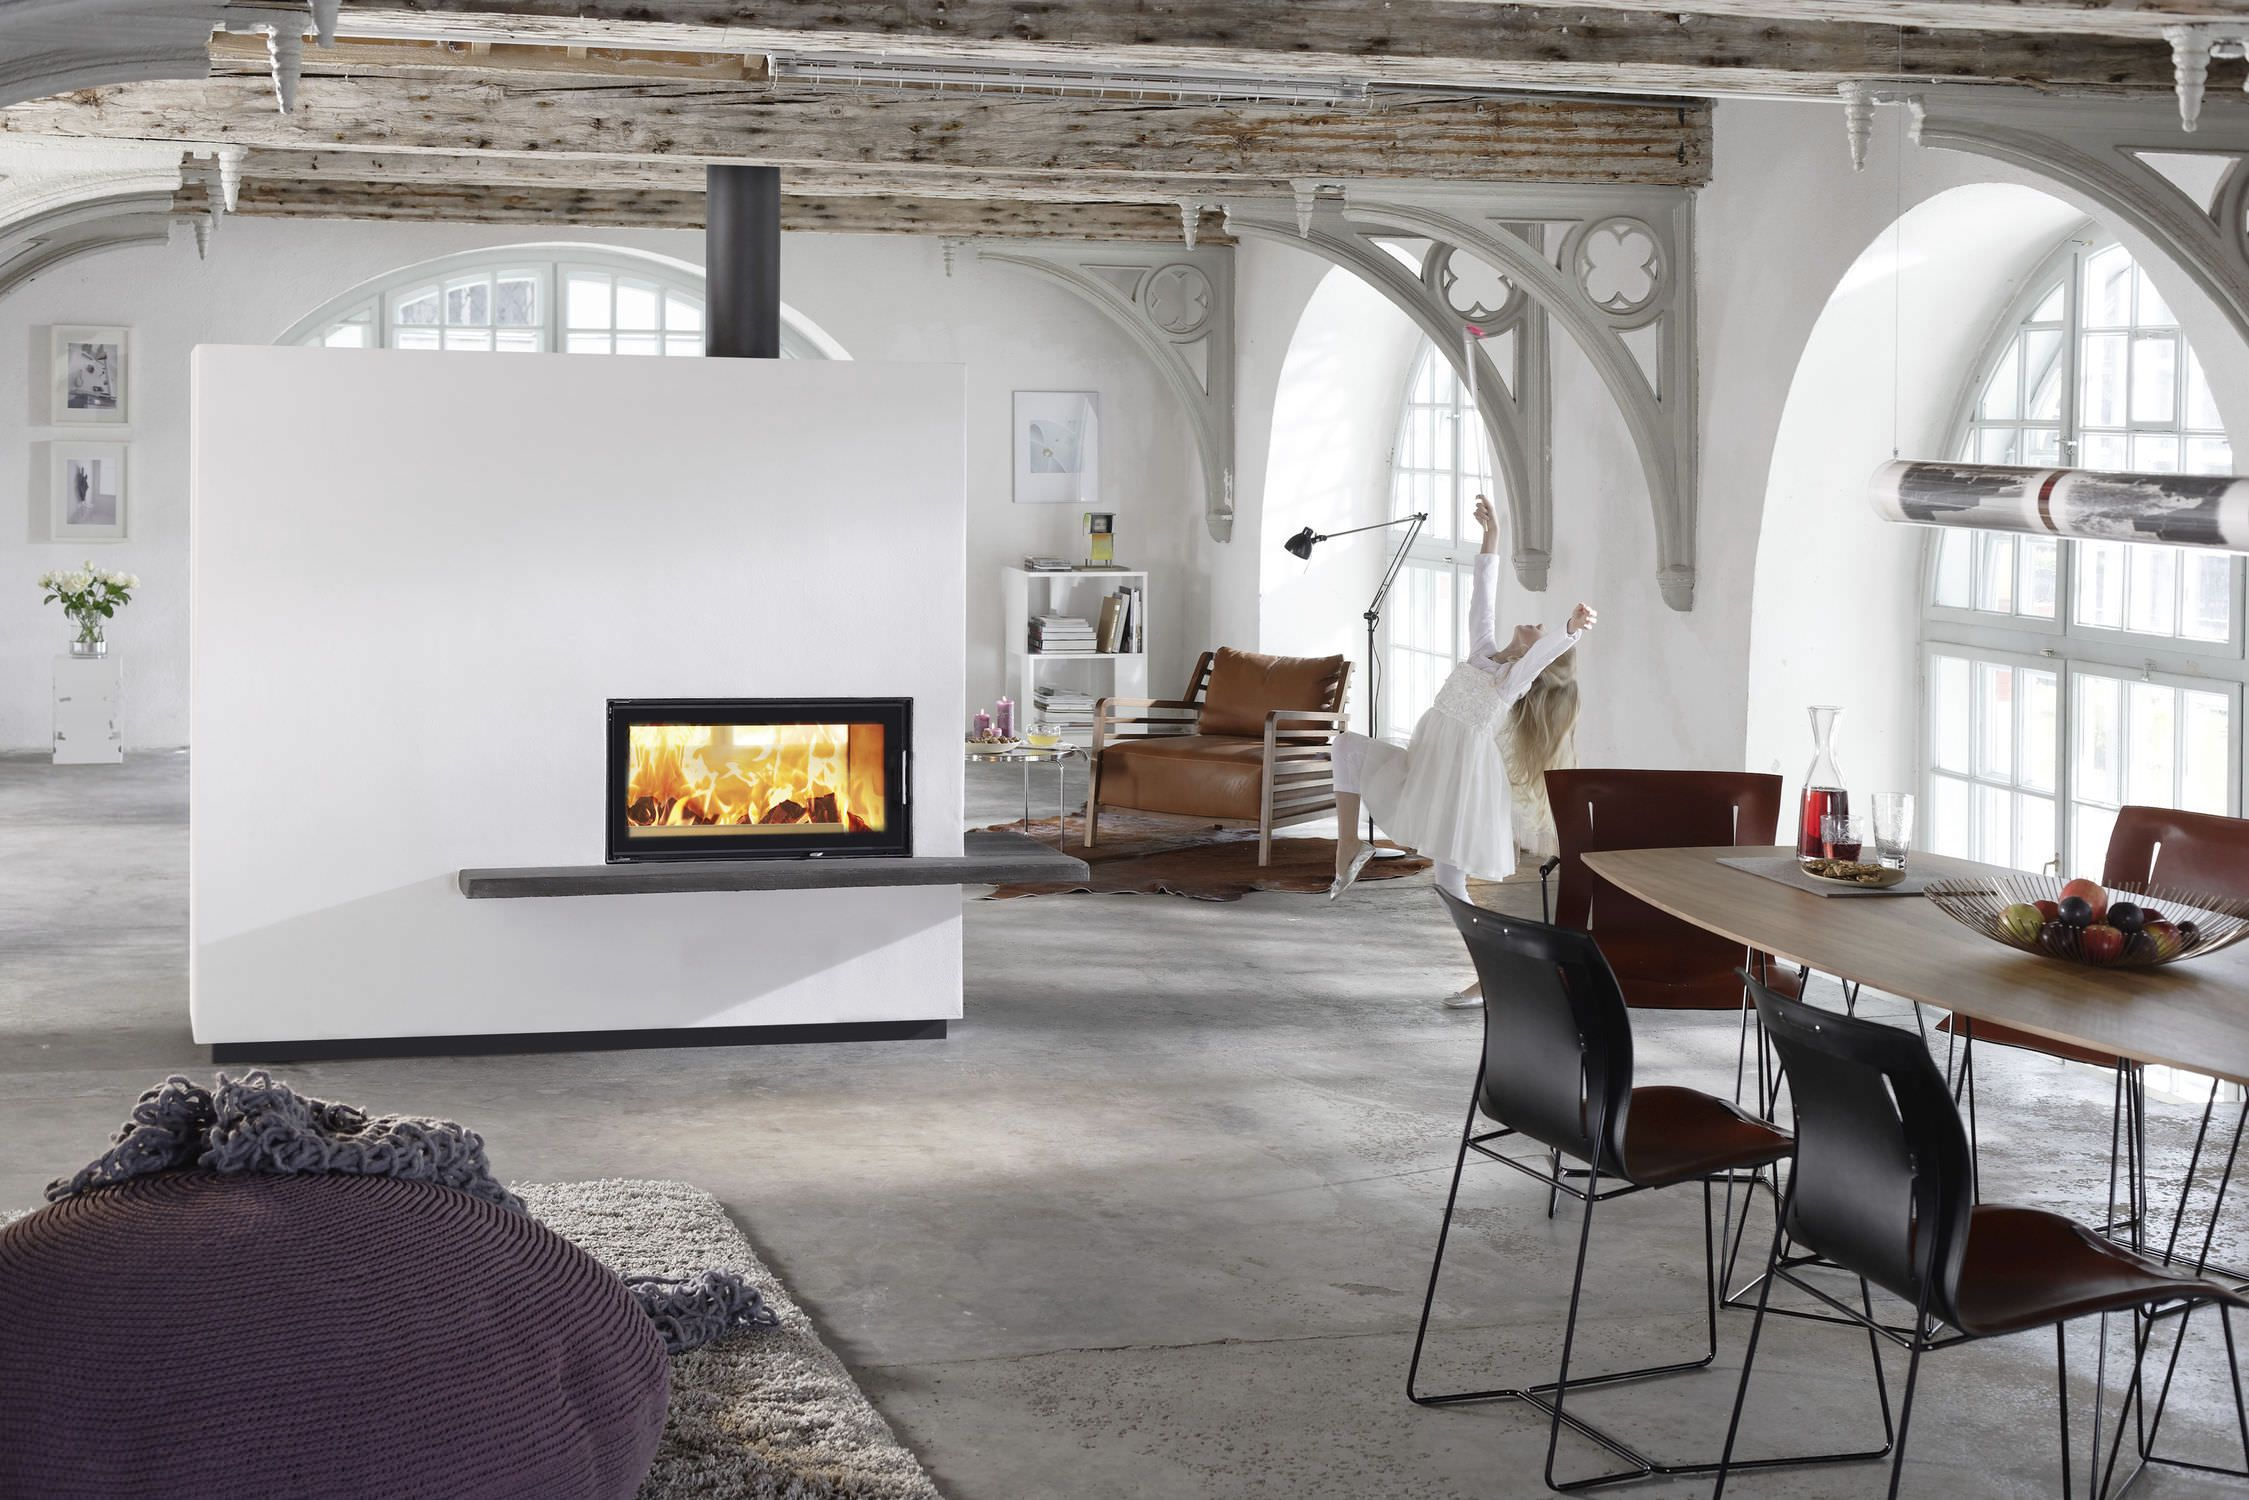 Ravishing White Wall Built In Double Sided Fireplace Insert With ...